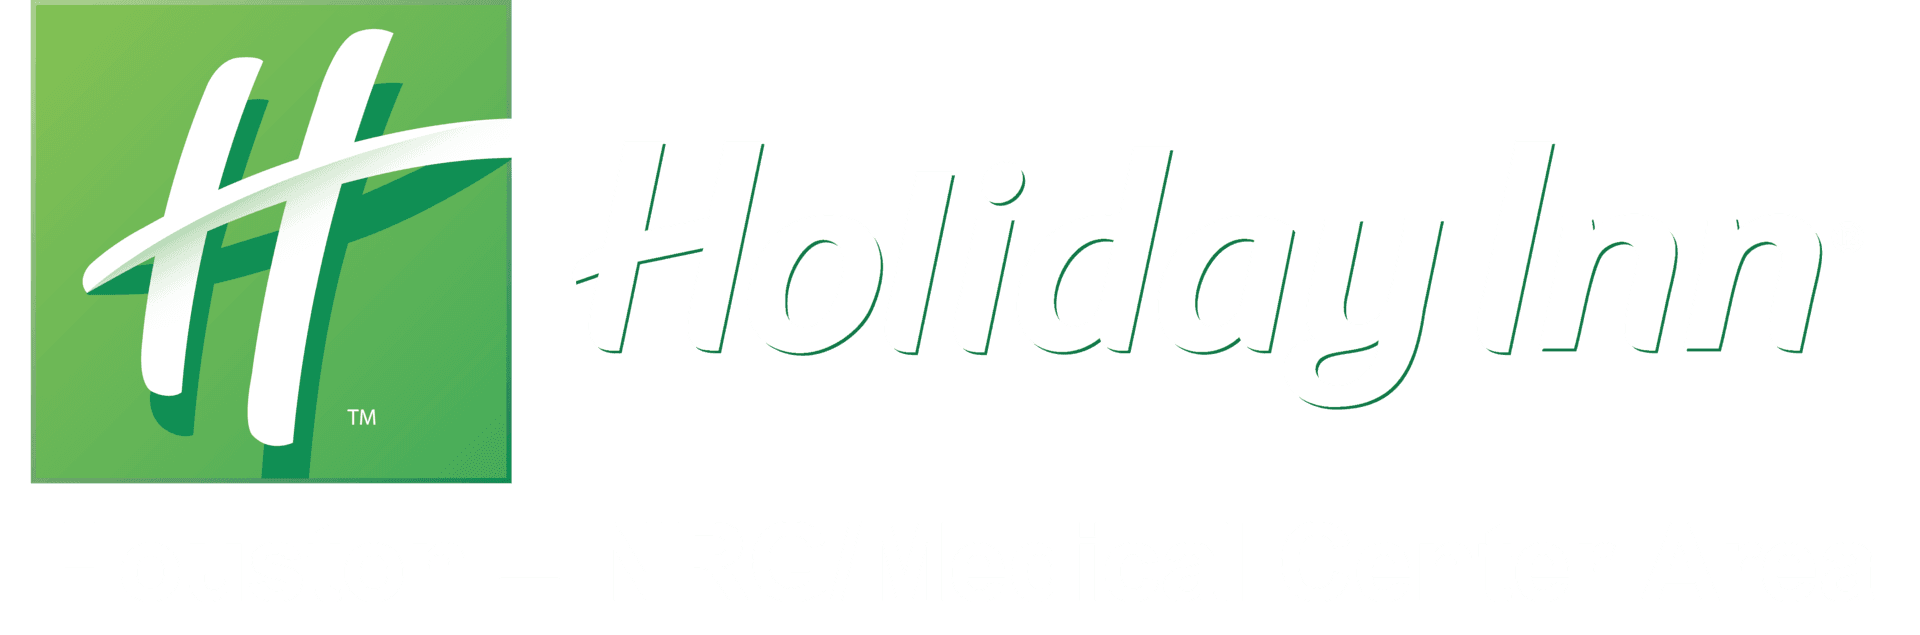 holiday inn houston hotel png logo #6553